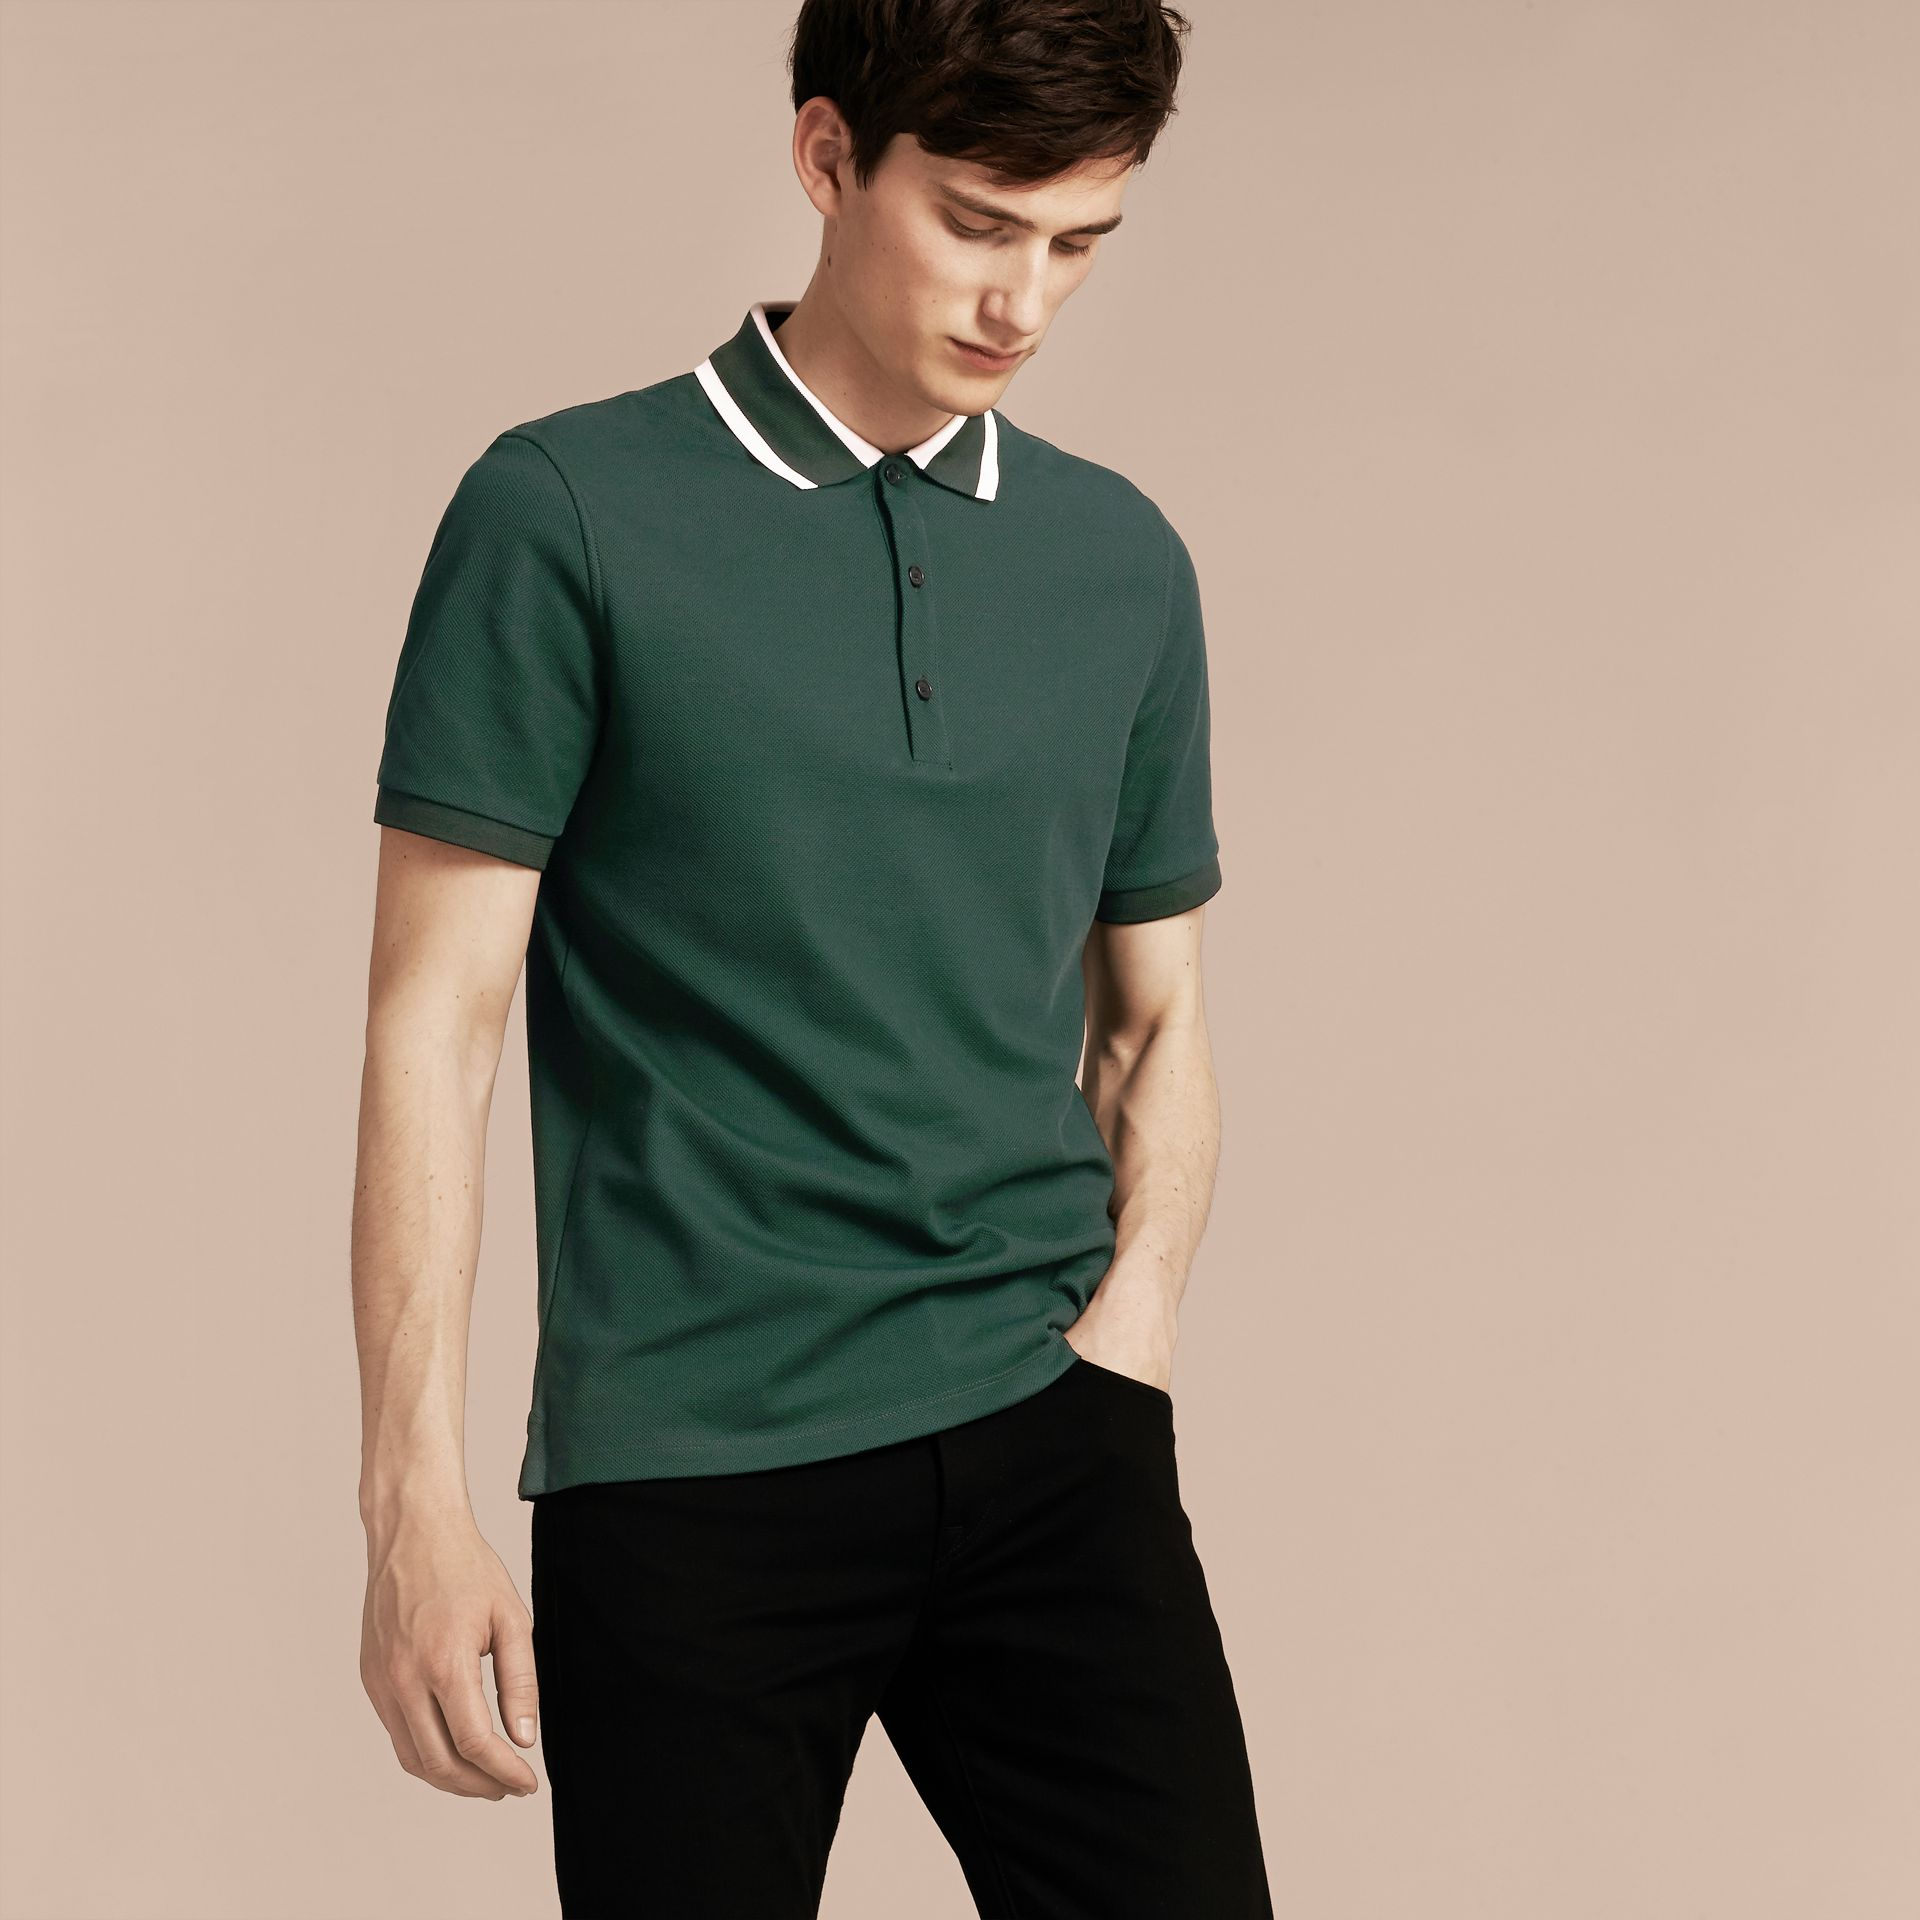 Racing green Striped Collar Cotton Piqué Polo Shirt Racing Green - gallery image 6